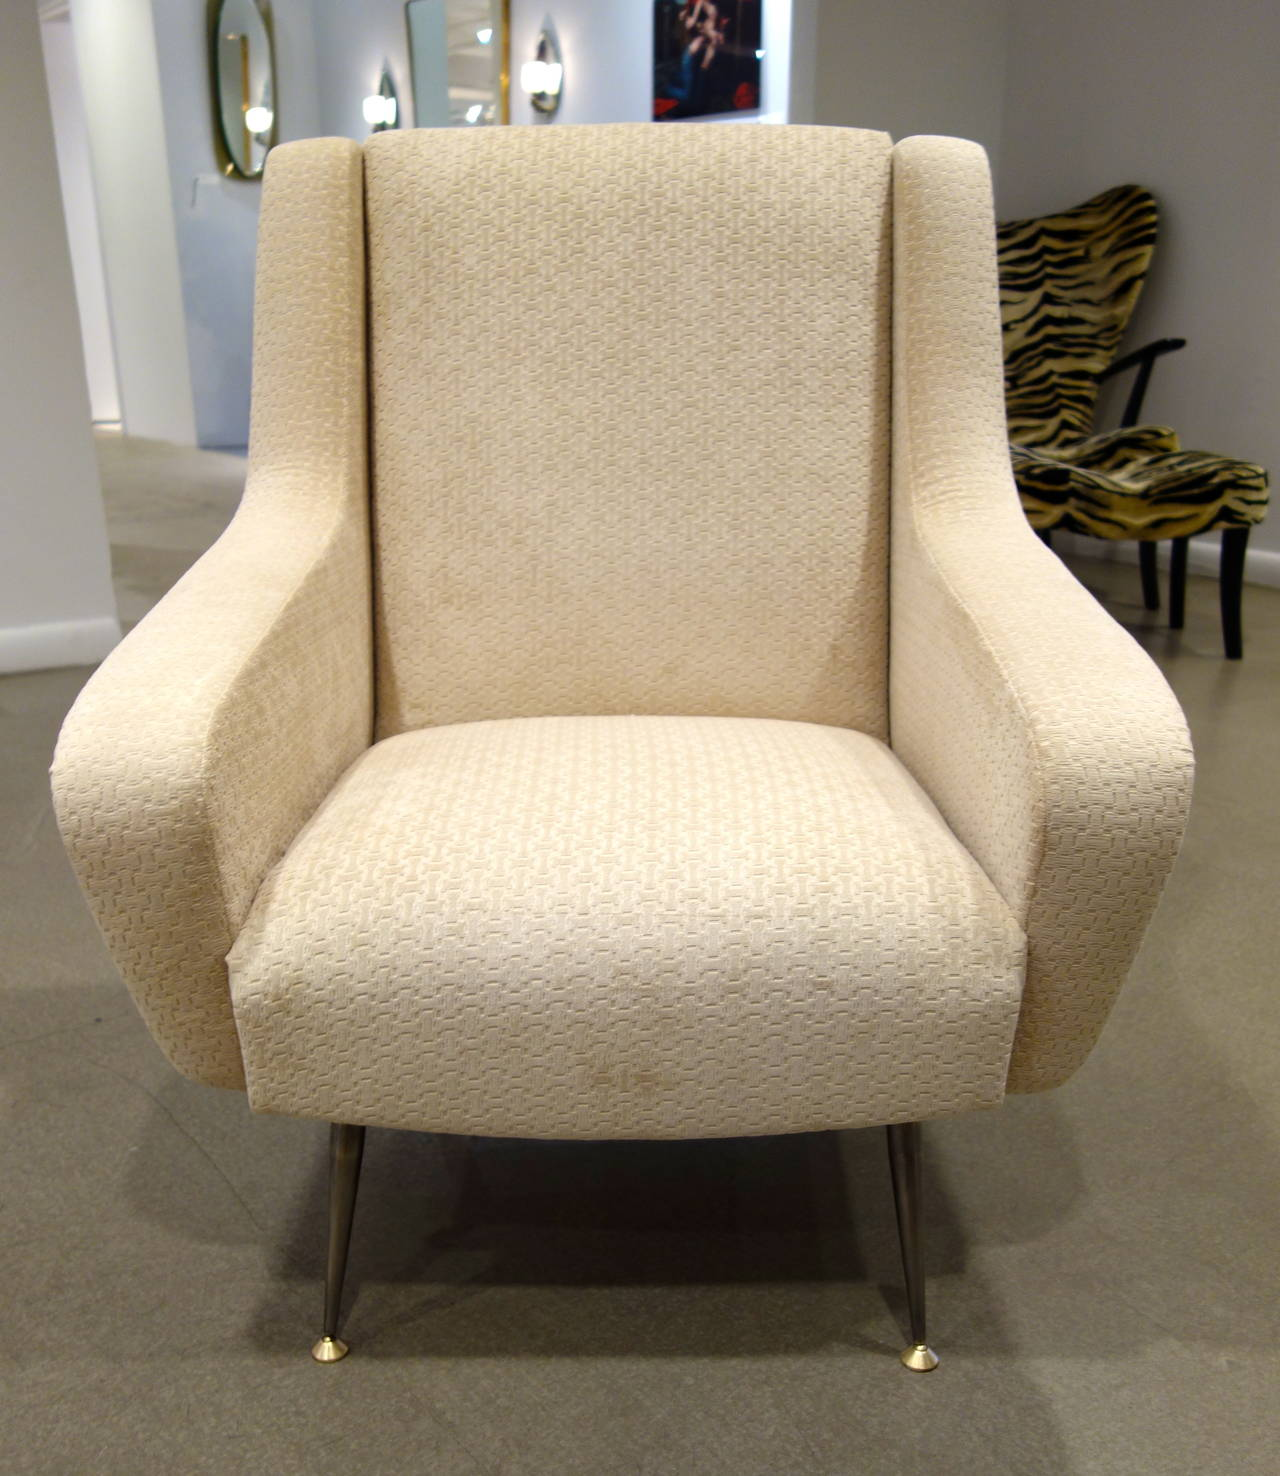 Mid-20th Century Pair of Mid-Century Modern Italian Sculptural Lounge Chairs or Armchairs For Sale